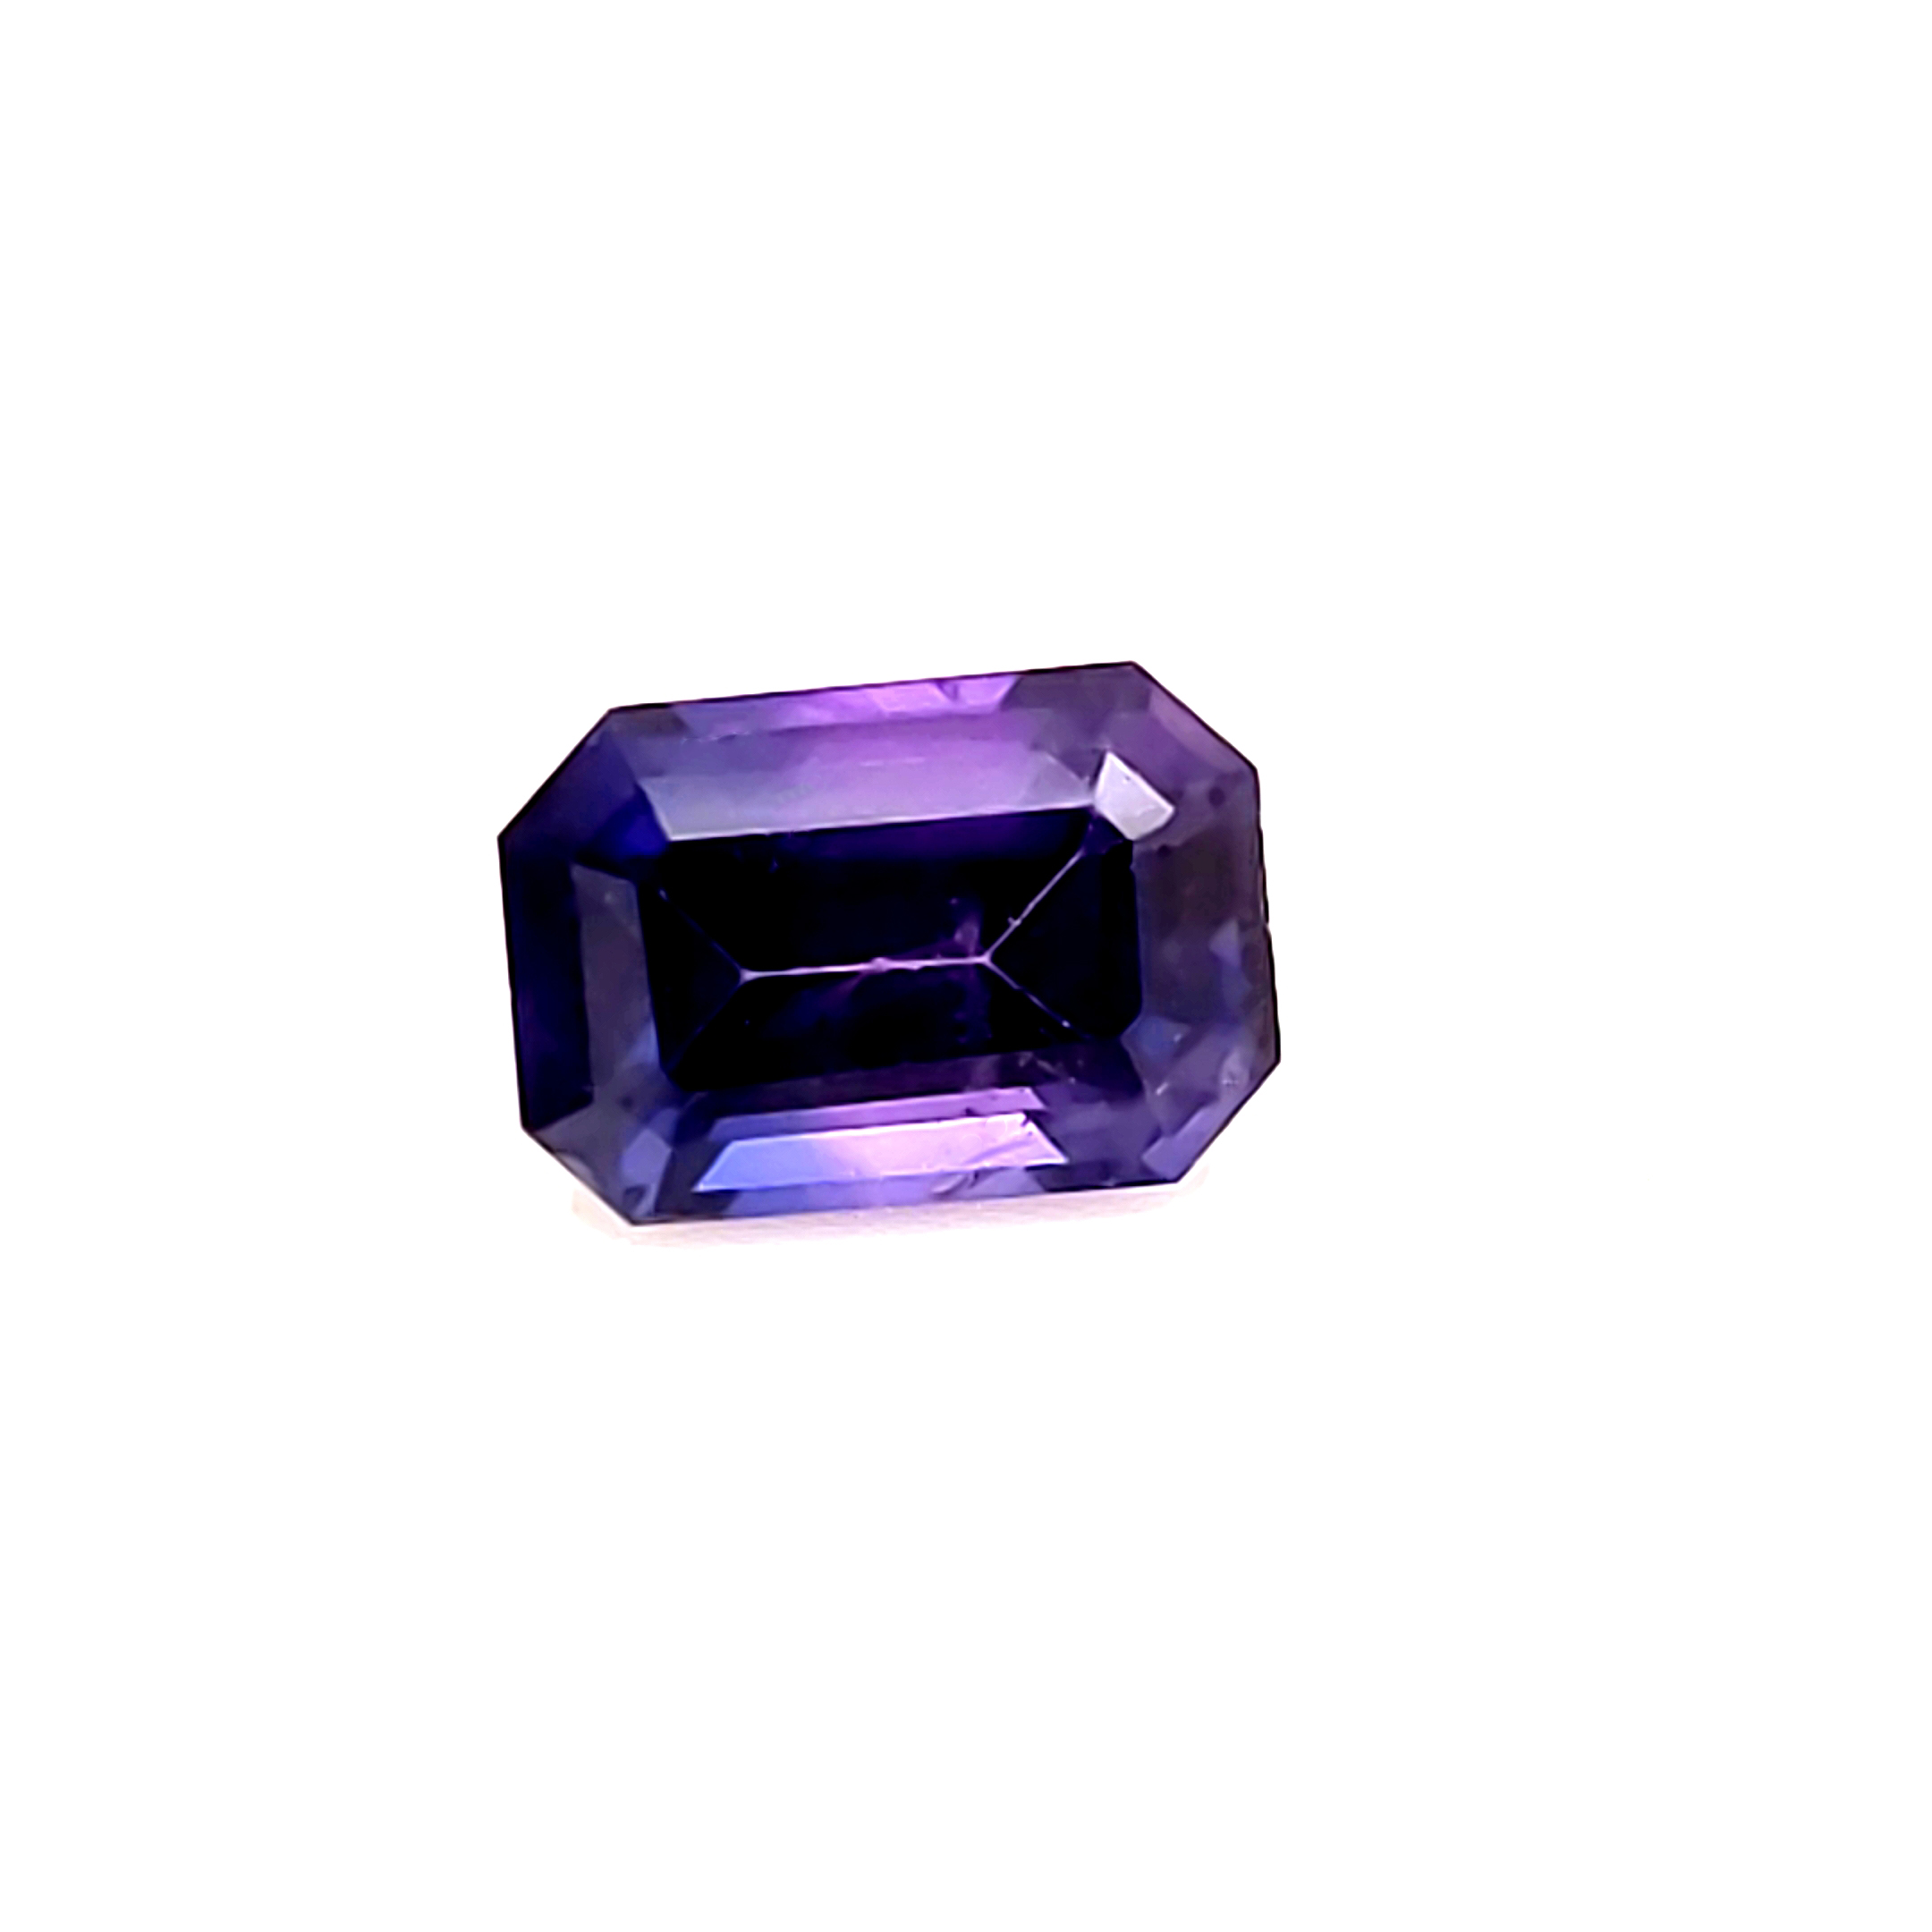 1.17 ct. Bicolor Purple and Blue Sapphire